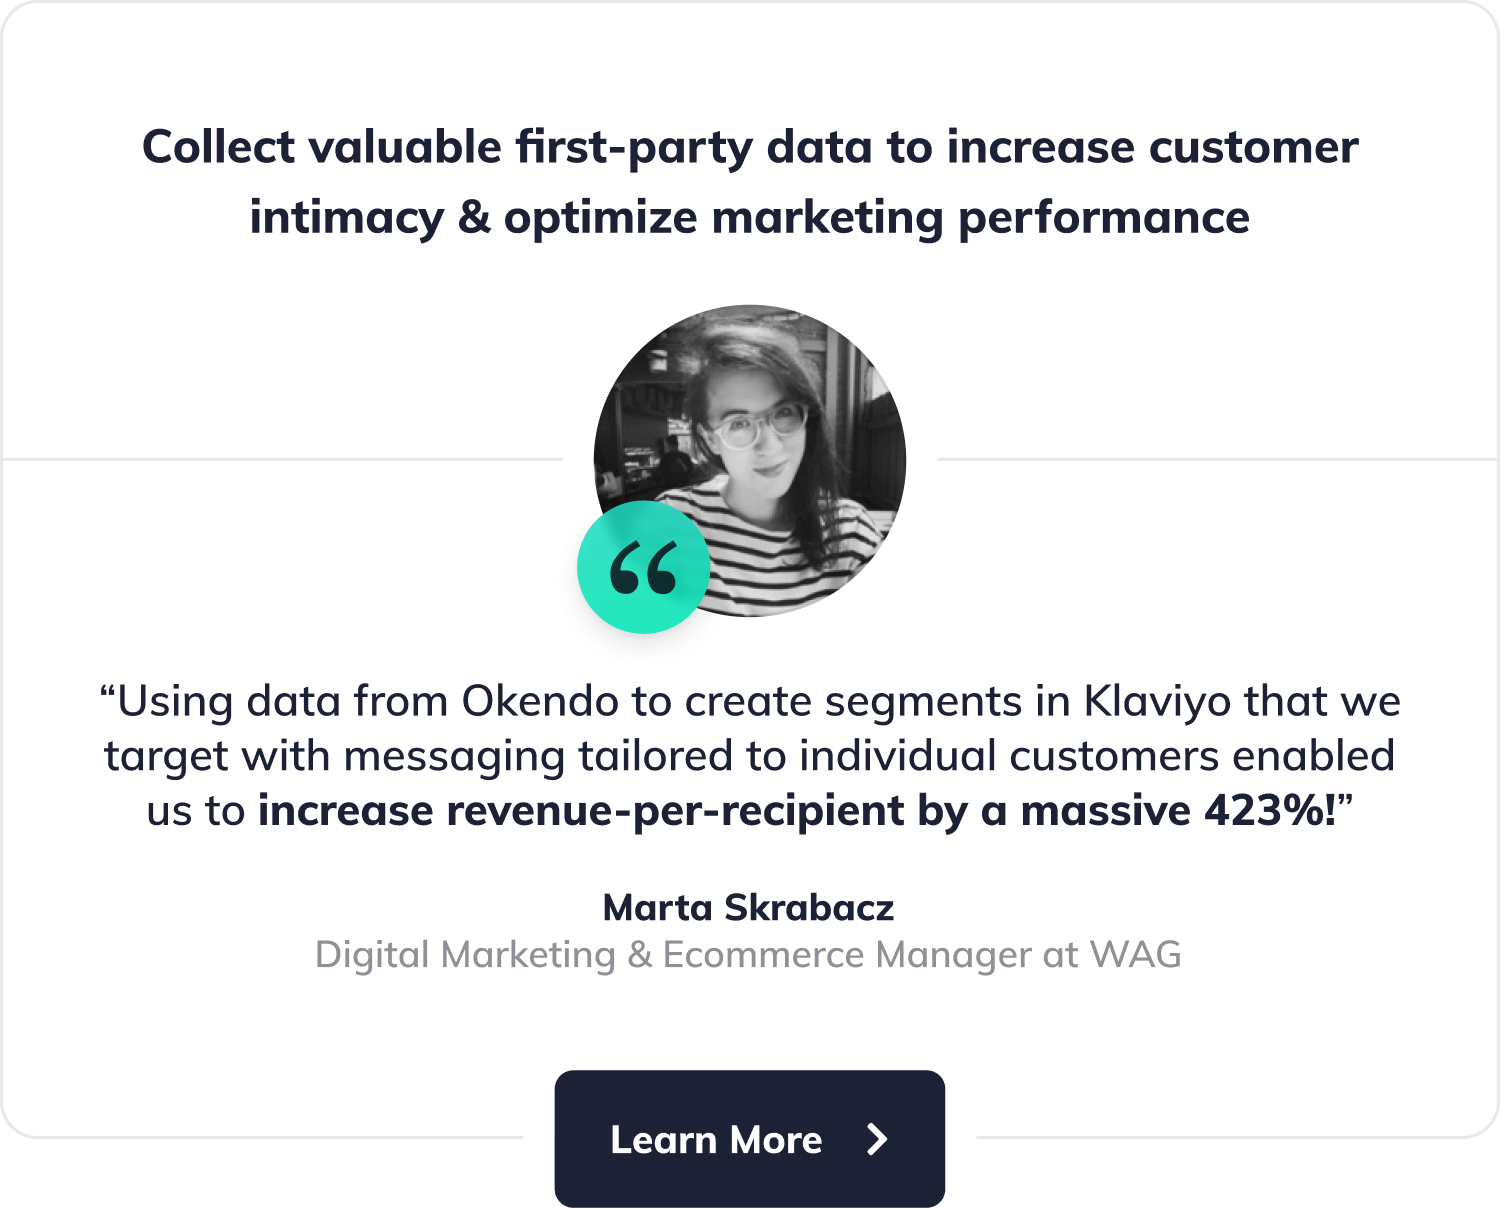 """Collect valuable first-party data to increase customer intimacy and optimize marketing performance. """"Using data from Okendo to create segments in Klaviyo that we target with messaging tailored to individual customers enabled us to increase revenue-per-recipient by a massive 423%!"""", says Marta Skrabacz, Digital Marketing & Ecommerce Manager at WAG. Button with label"""